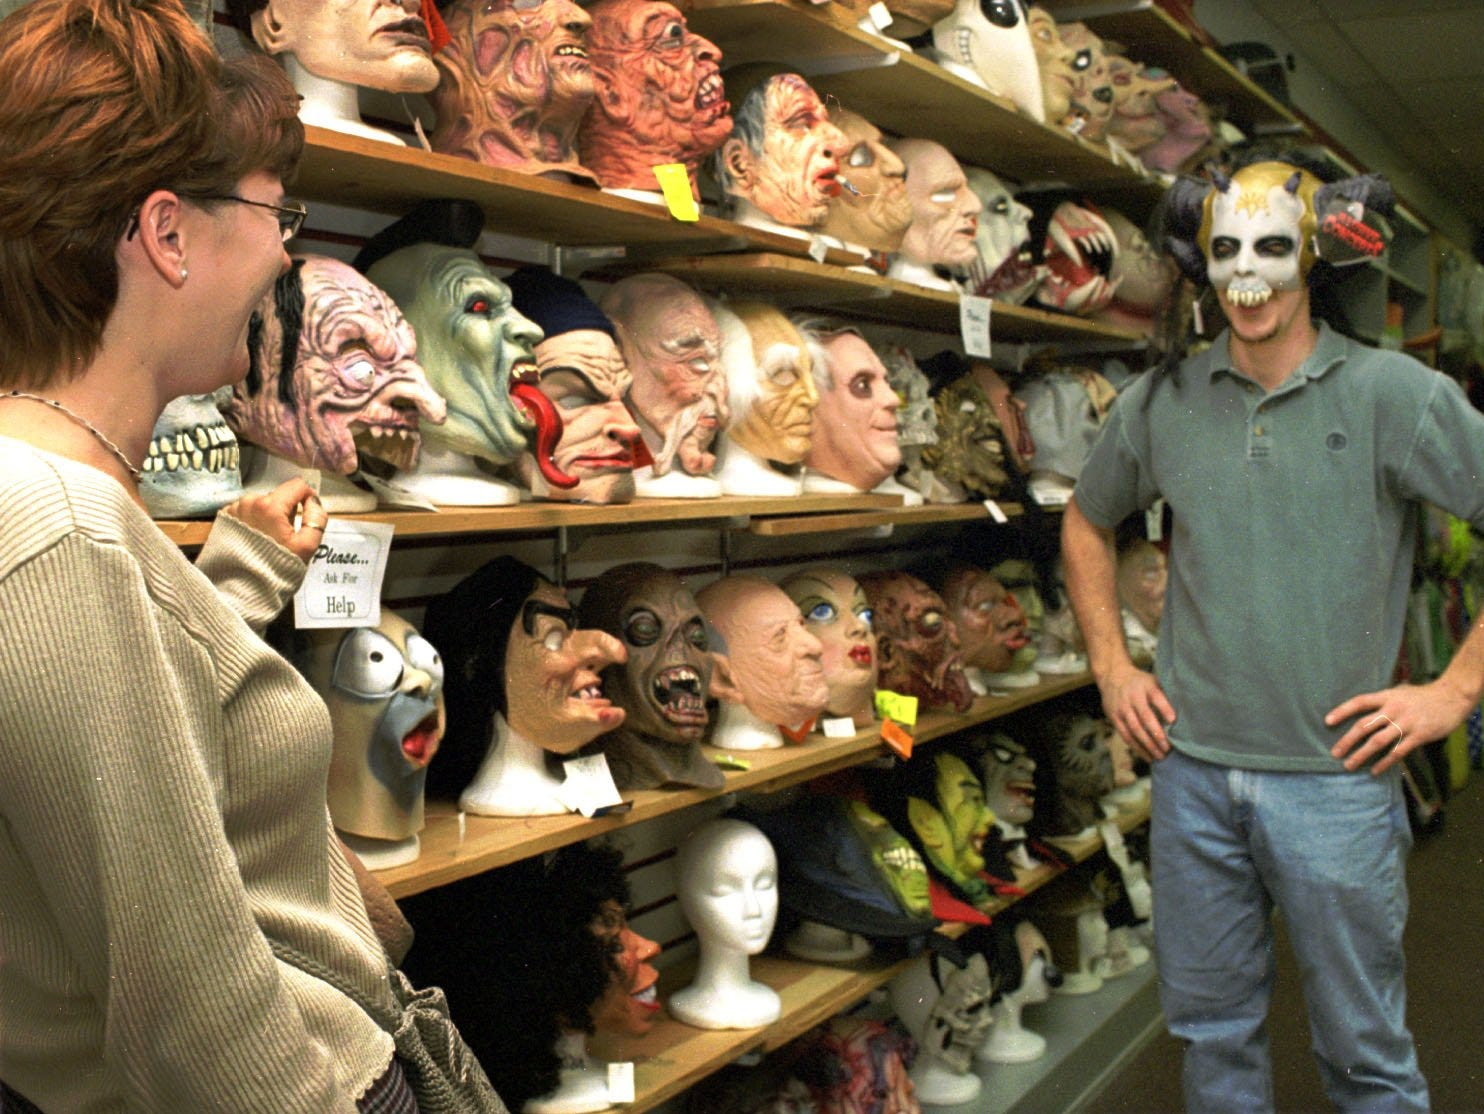 1998: Dan Kithcart of Waverly tries on a Halloween mask for Lisa Plouse, also of Waverly, as they look for costumes at The Costume Place in the Arnot Mall. Counting costumes, candy and decorations, Halloween sales rank second behind Christmas, according to industry experts.